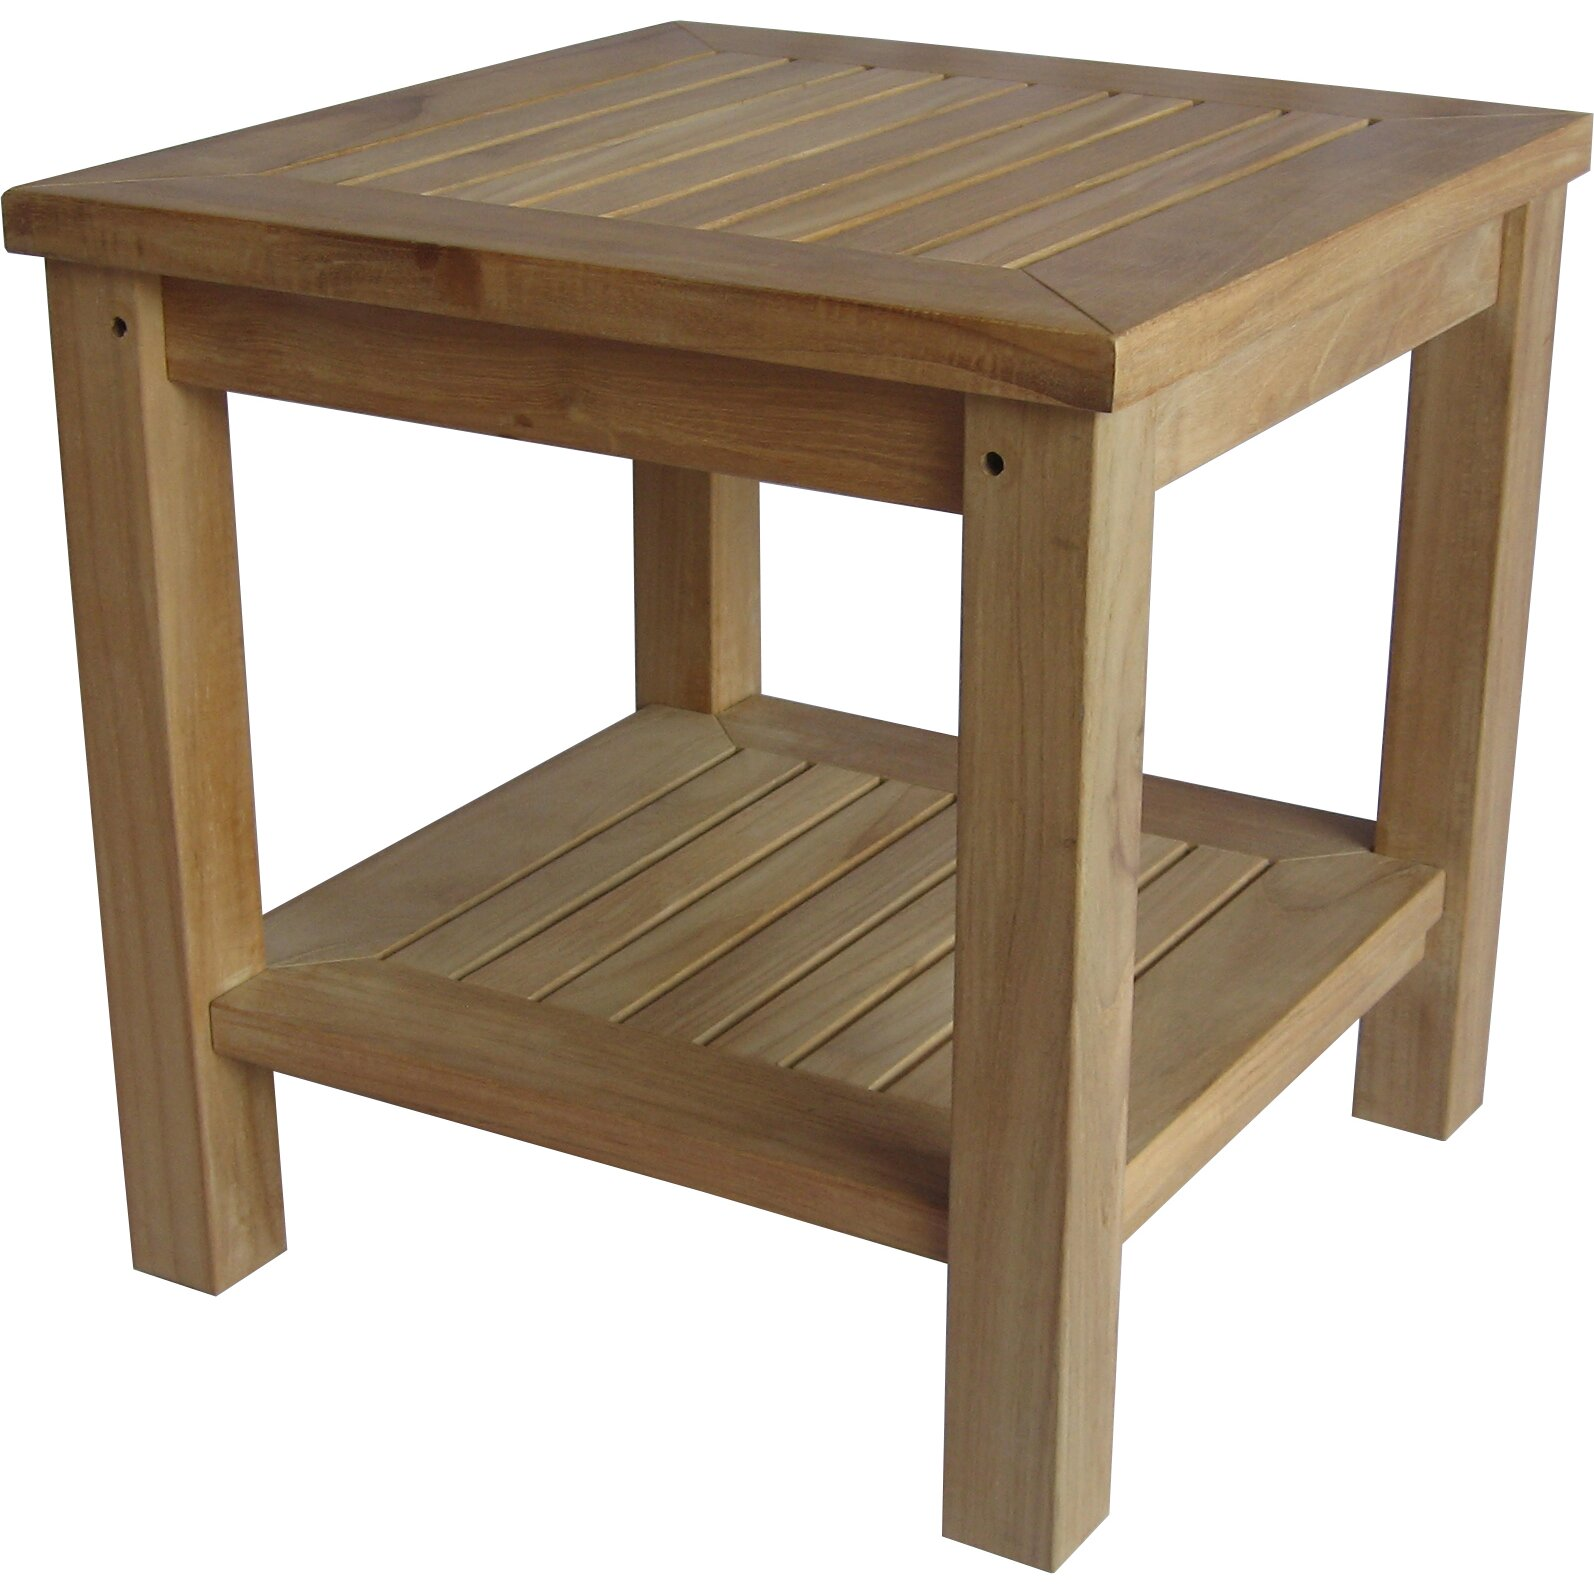 Arbora teak bristol teak side table reviews wayfair for Outdoor teak side table